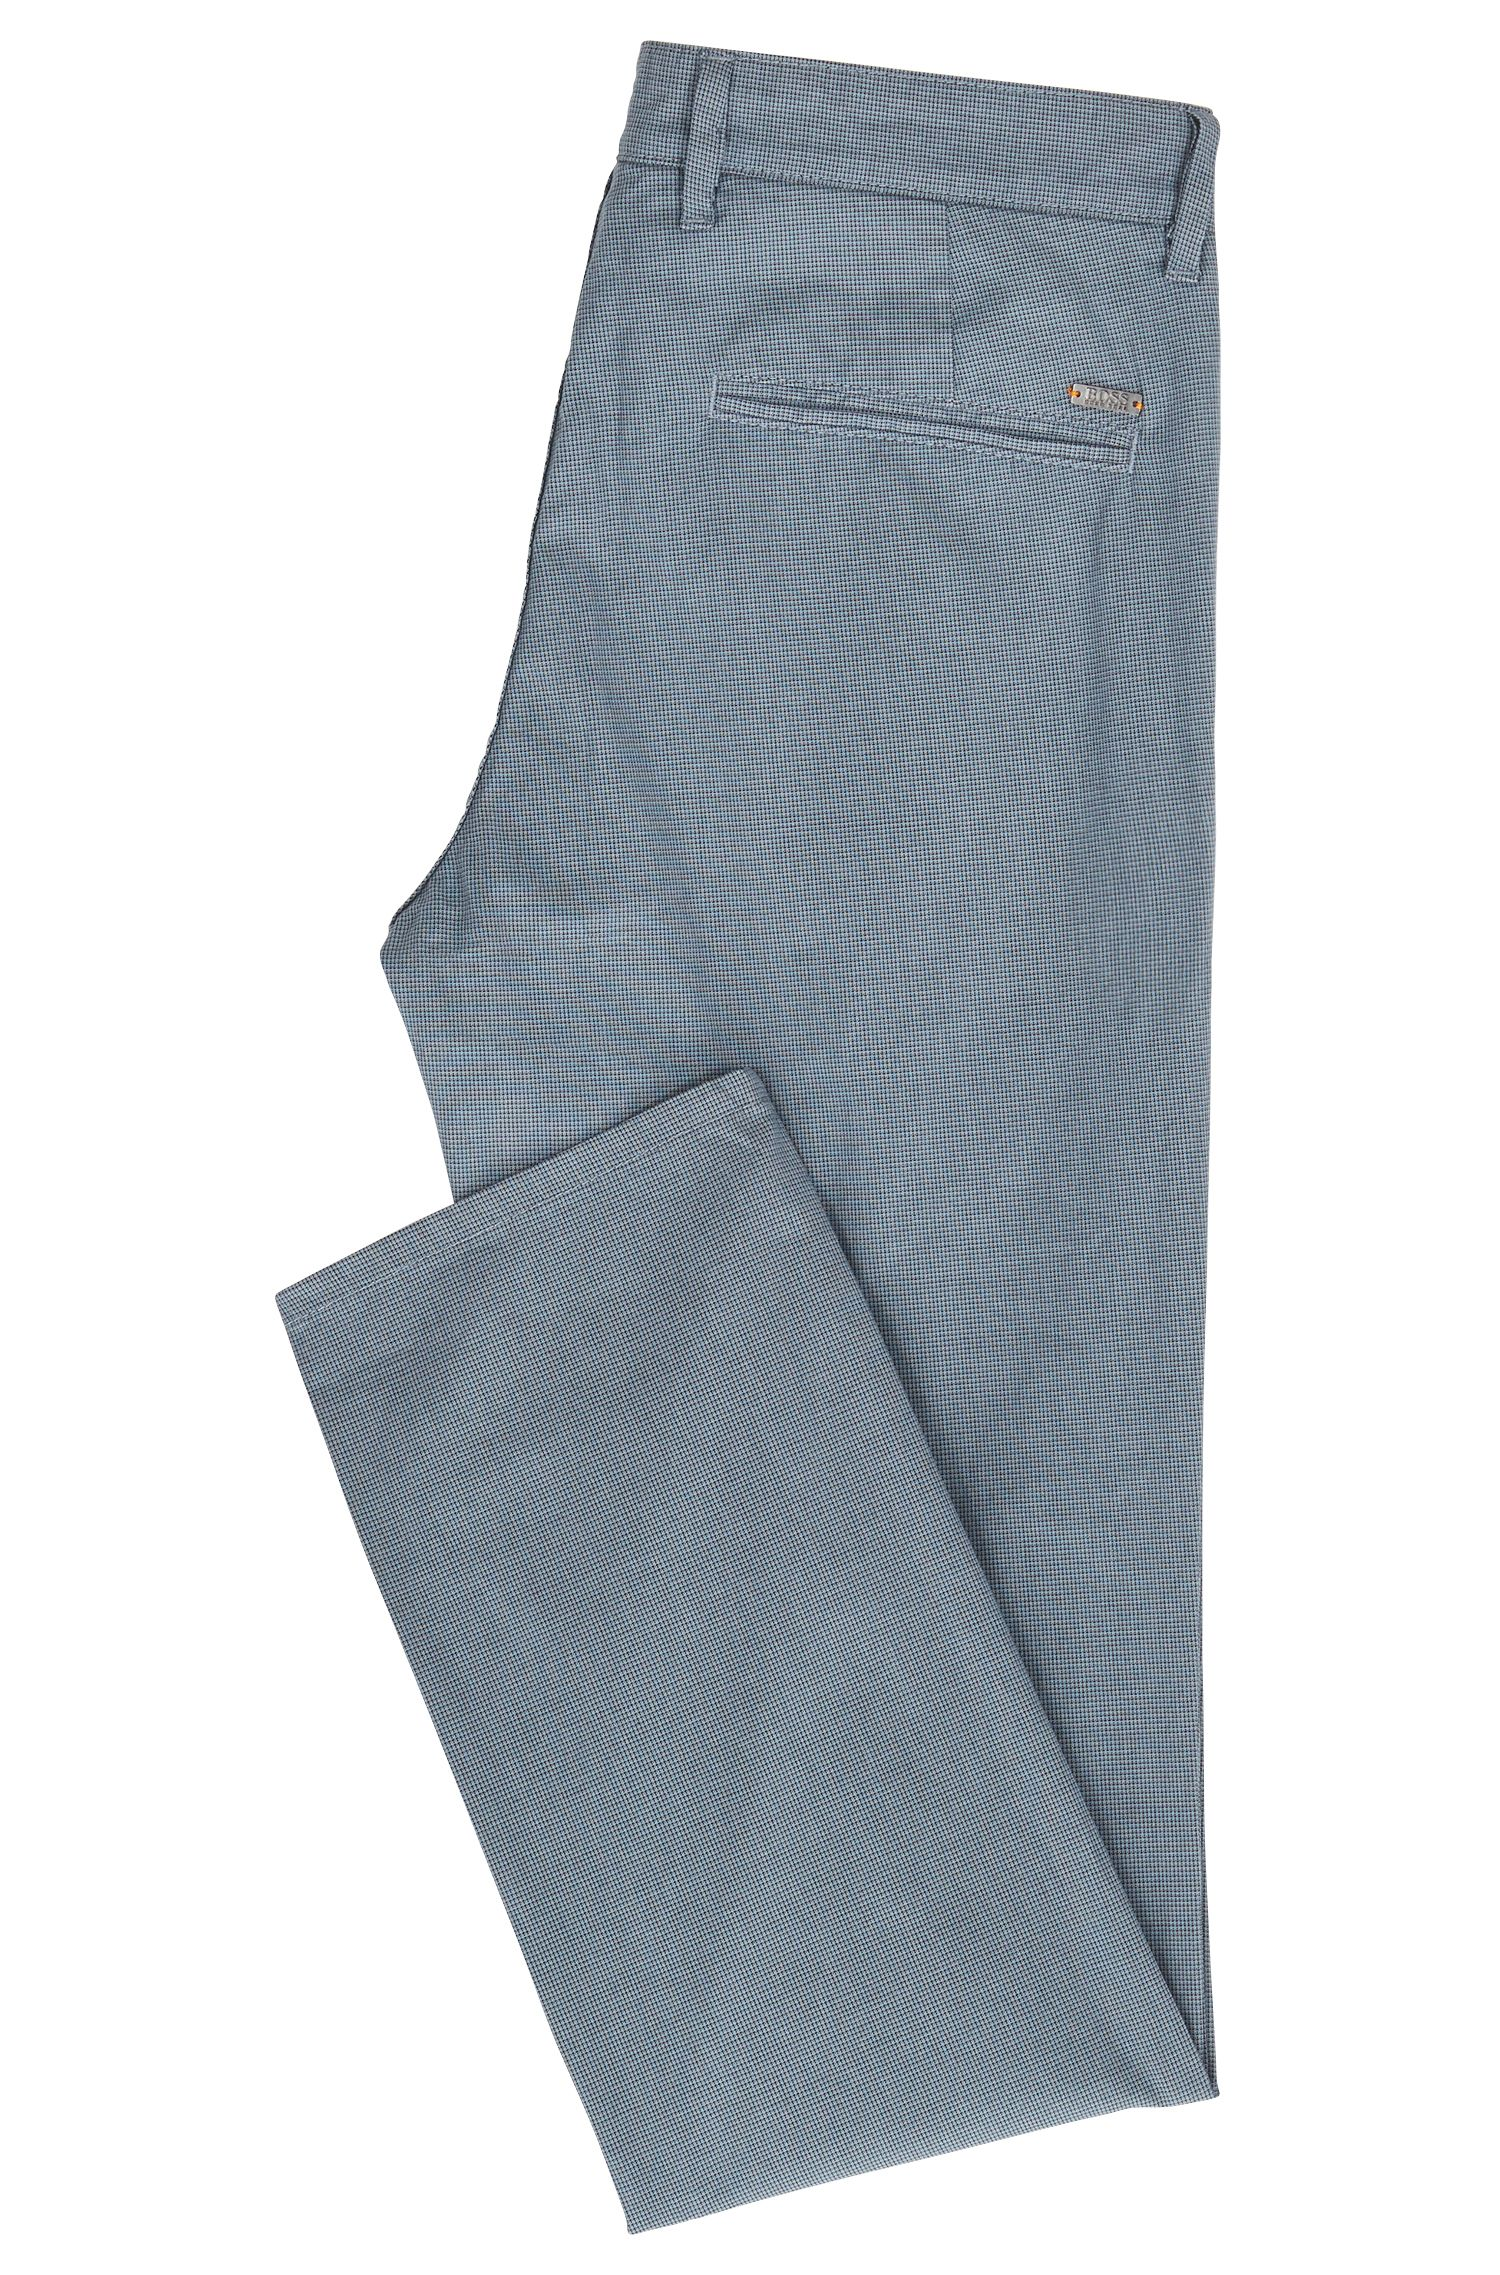 Slim-Fit Chino aus Stretch-Baumwolle mit dezentem Muster